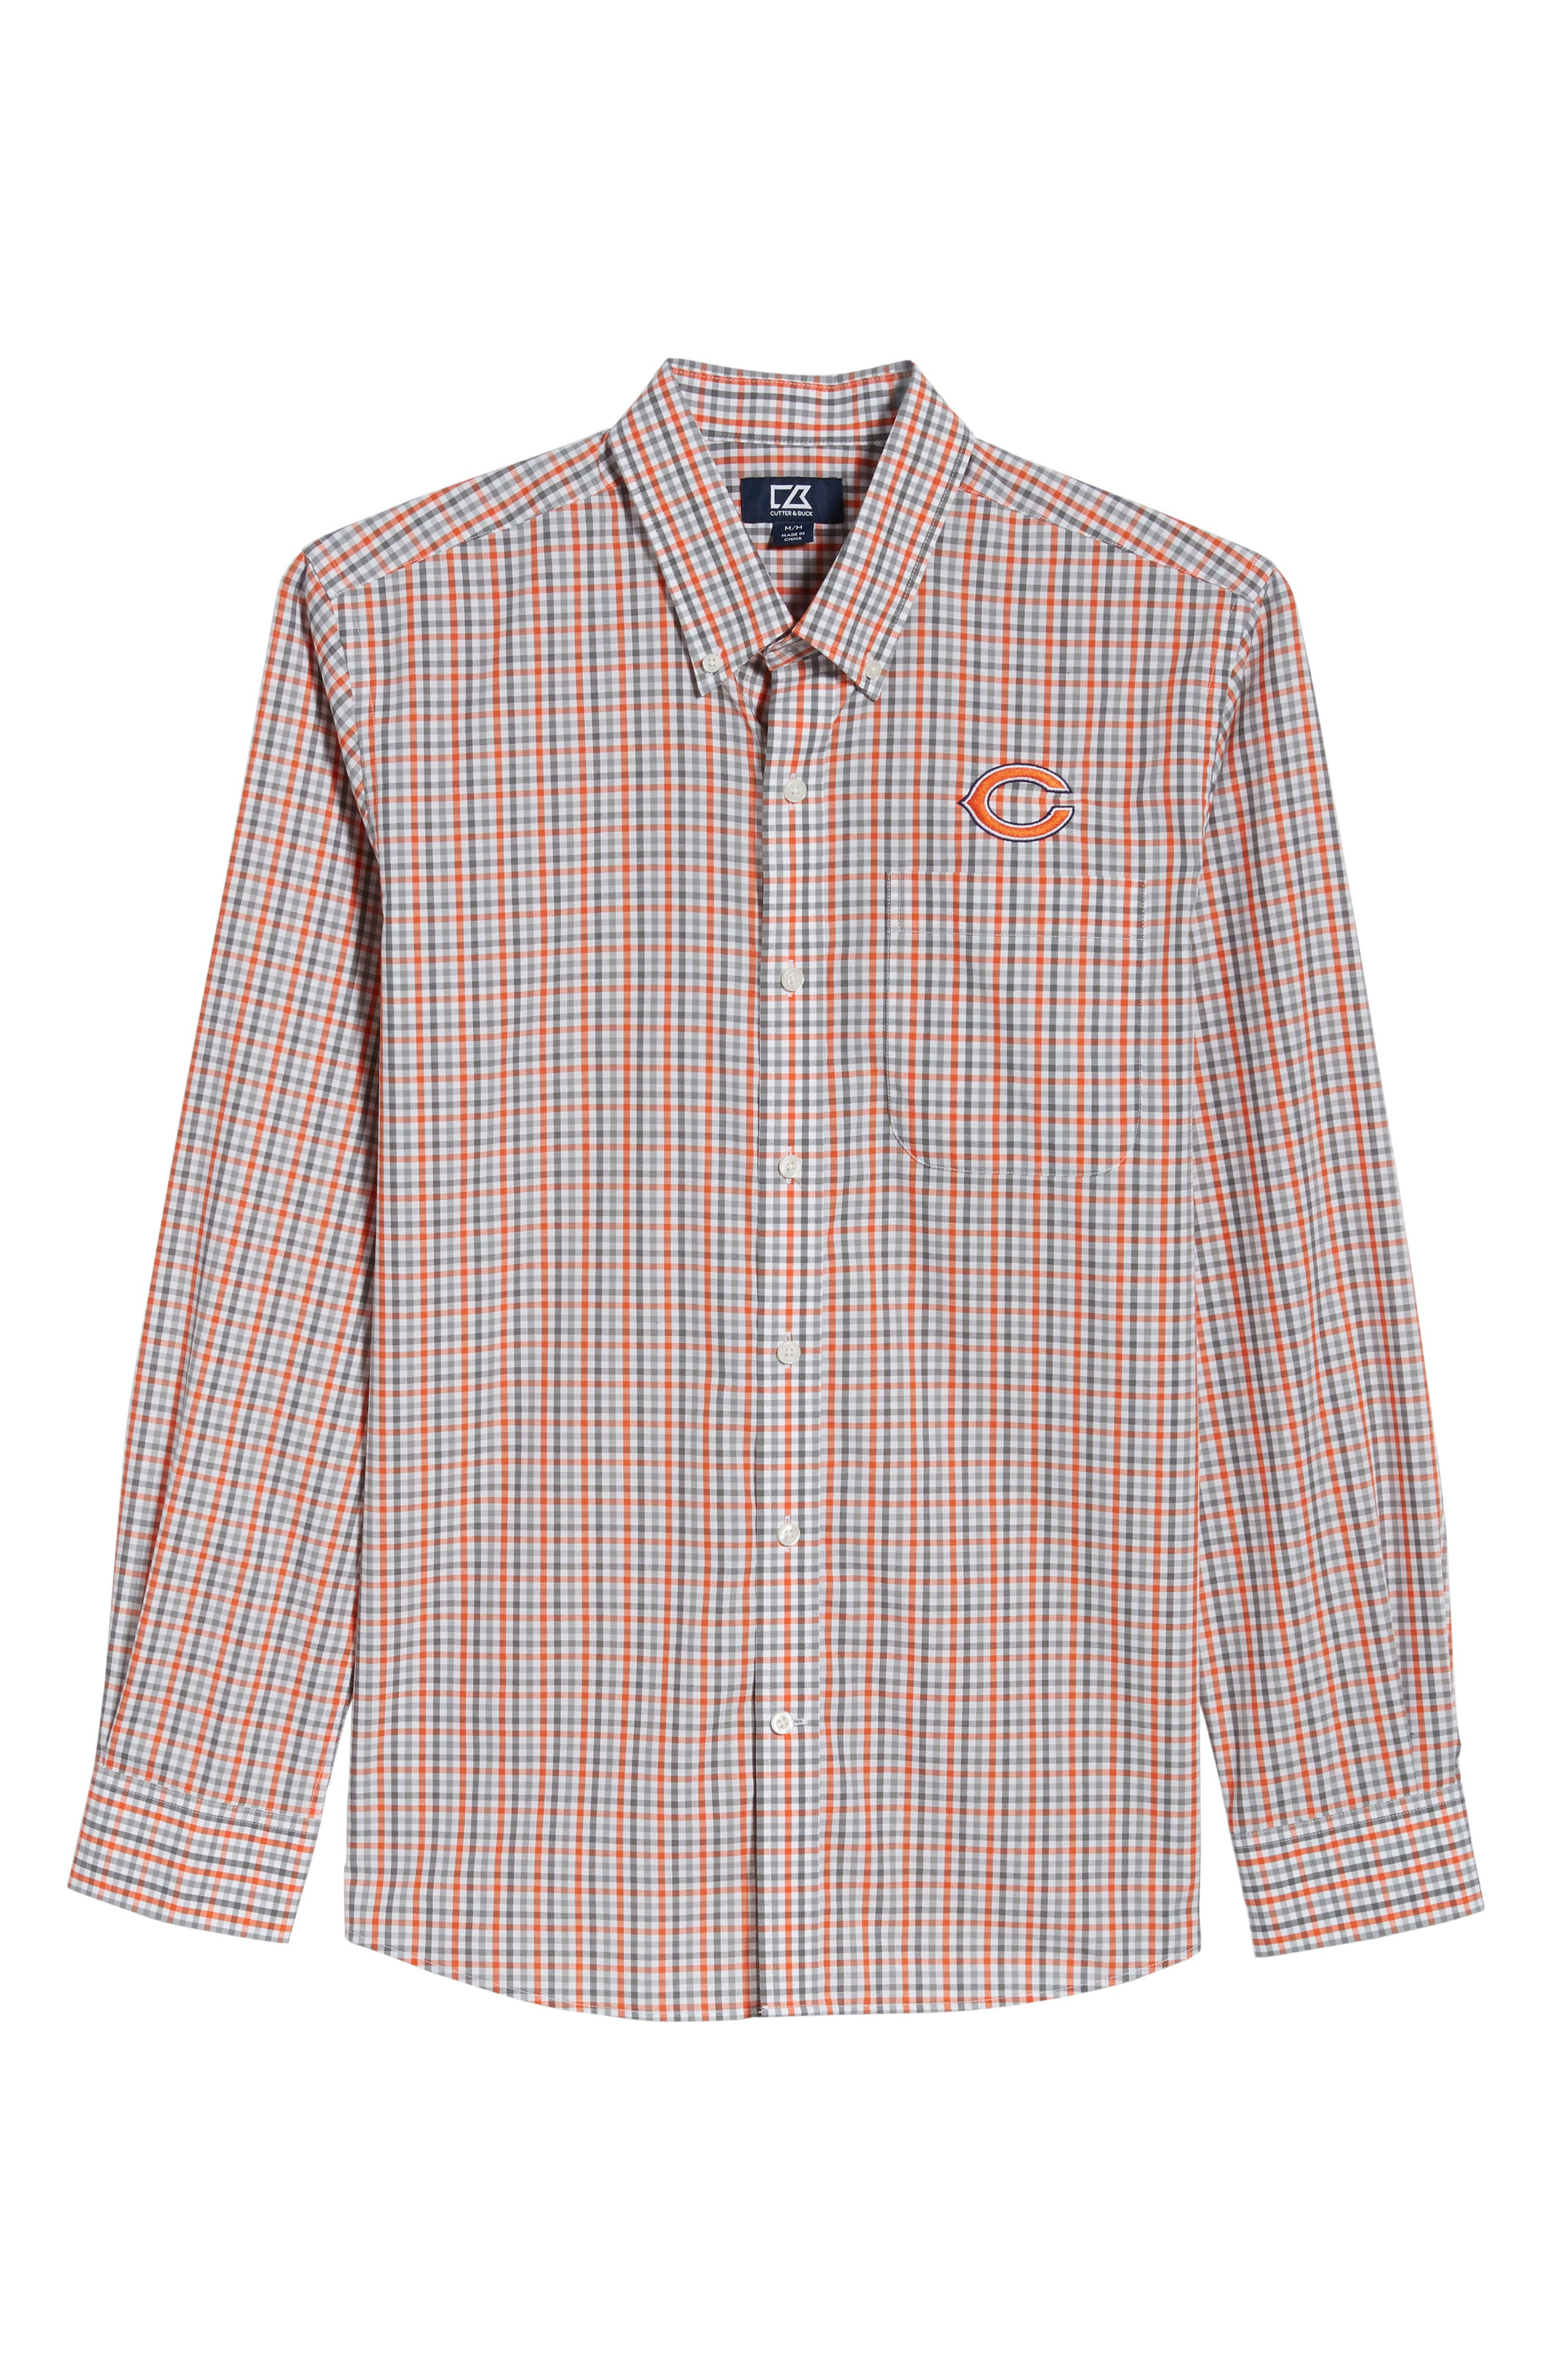 Chicago Bears - Gilman Regular Fit Plaid Sport Shirt,                             Alternate thumbnail 6, color,                             COLLEGE ORANGE